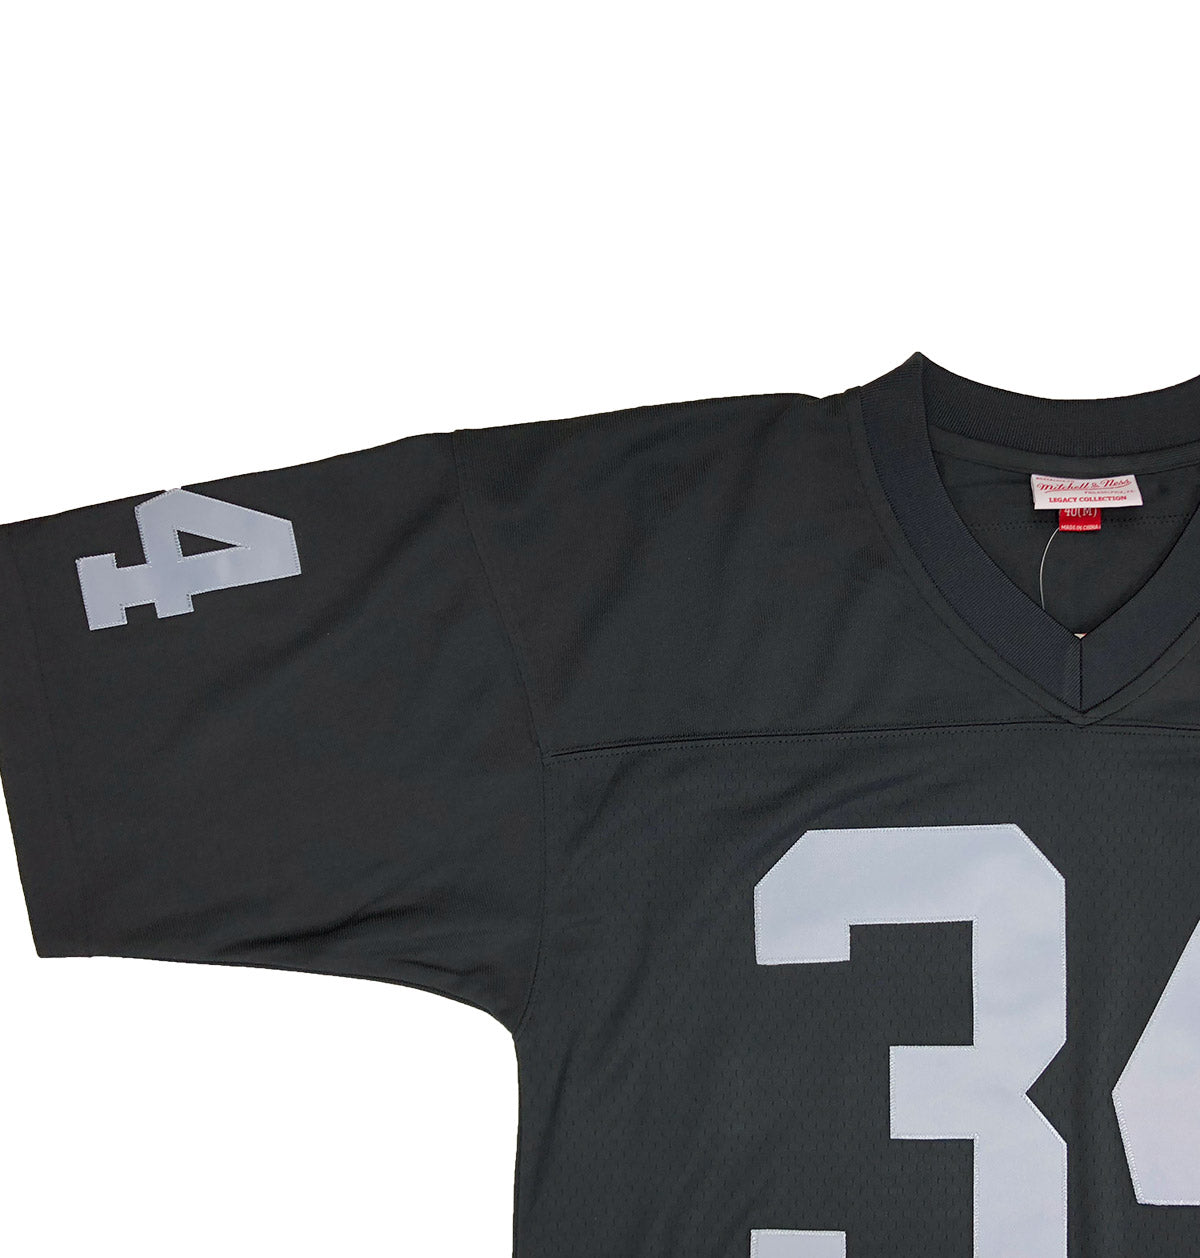 best service 53077 0498e where can i buy oakland raiders legacy jersey 89c80 cca24